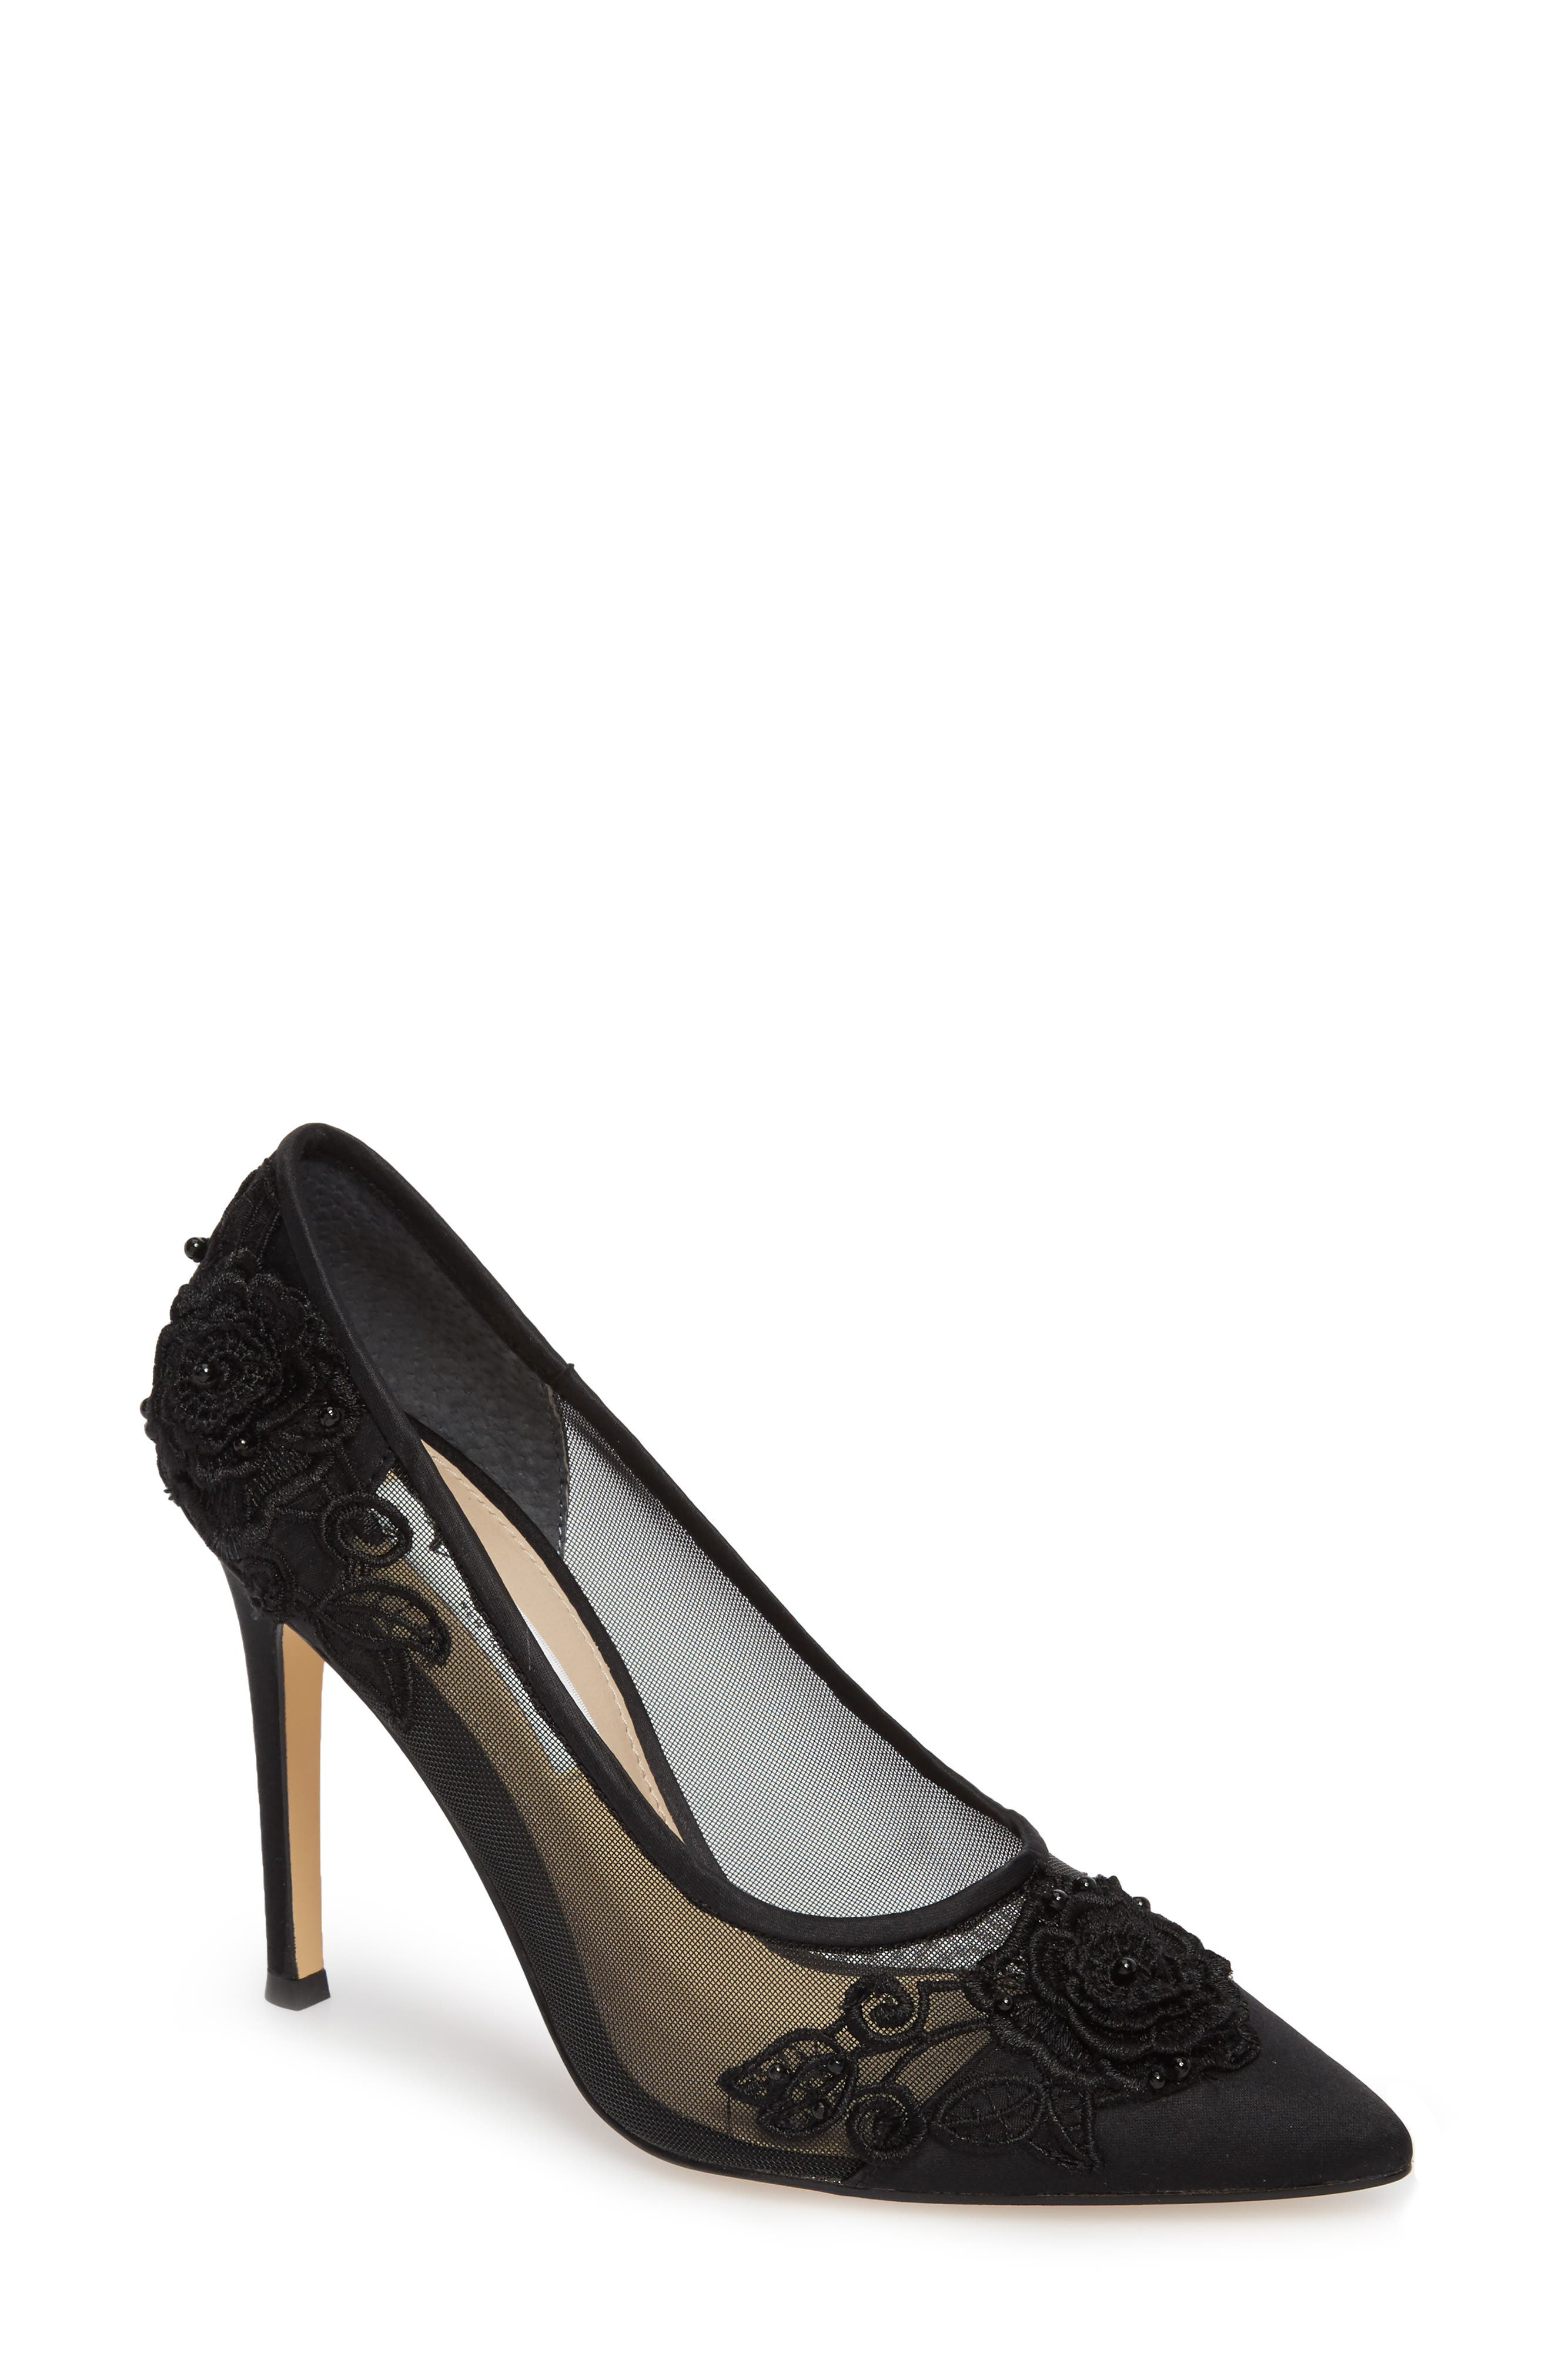 Donela Pump,                         Main,                         color, Black Satin